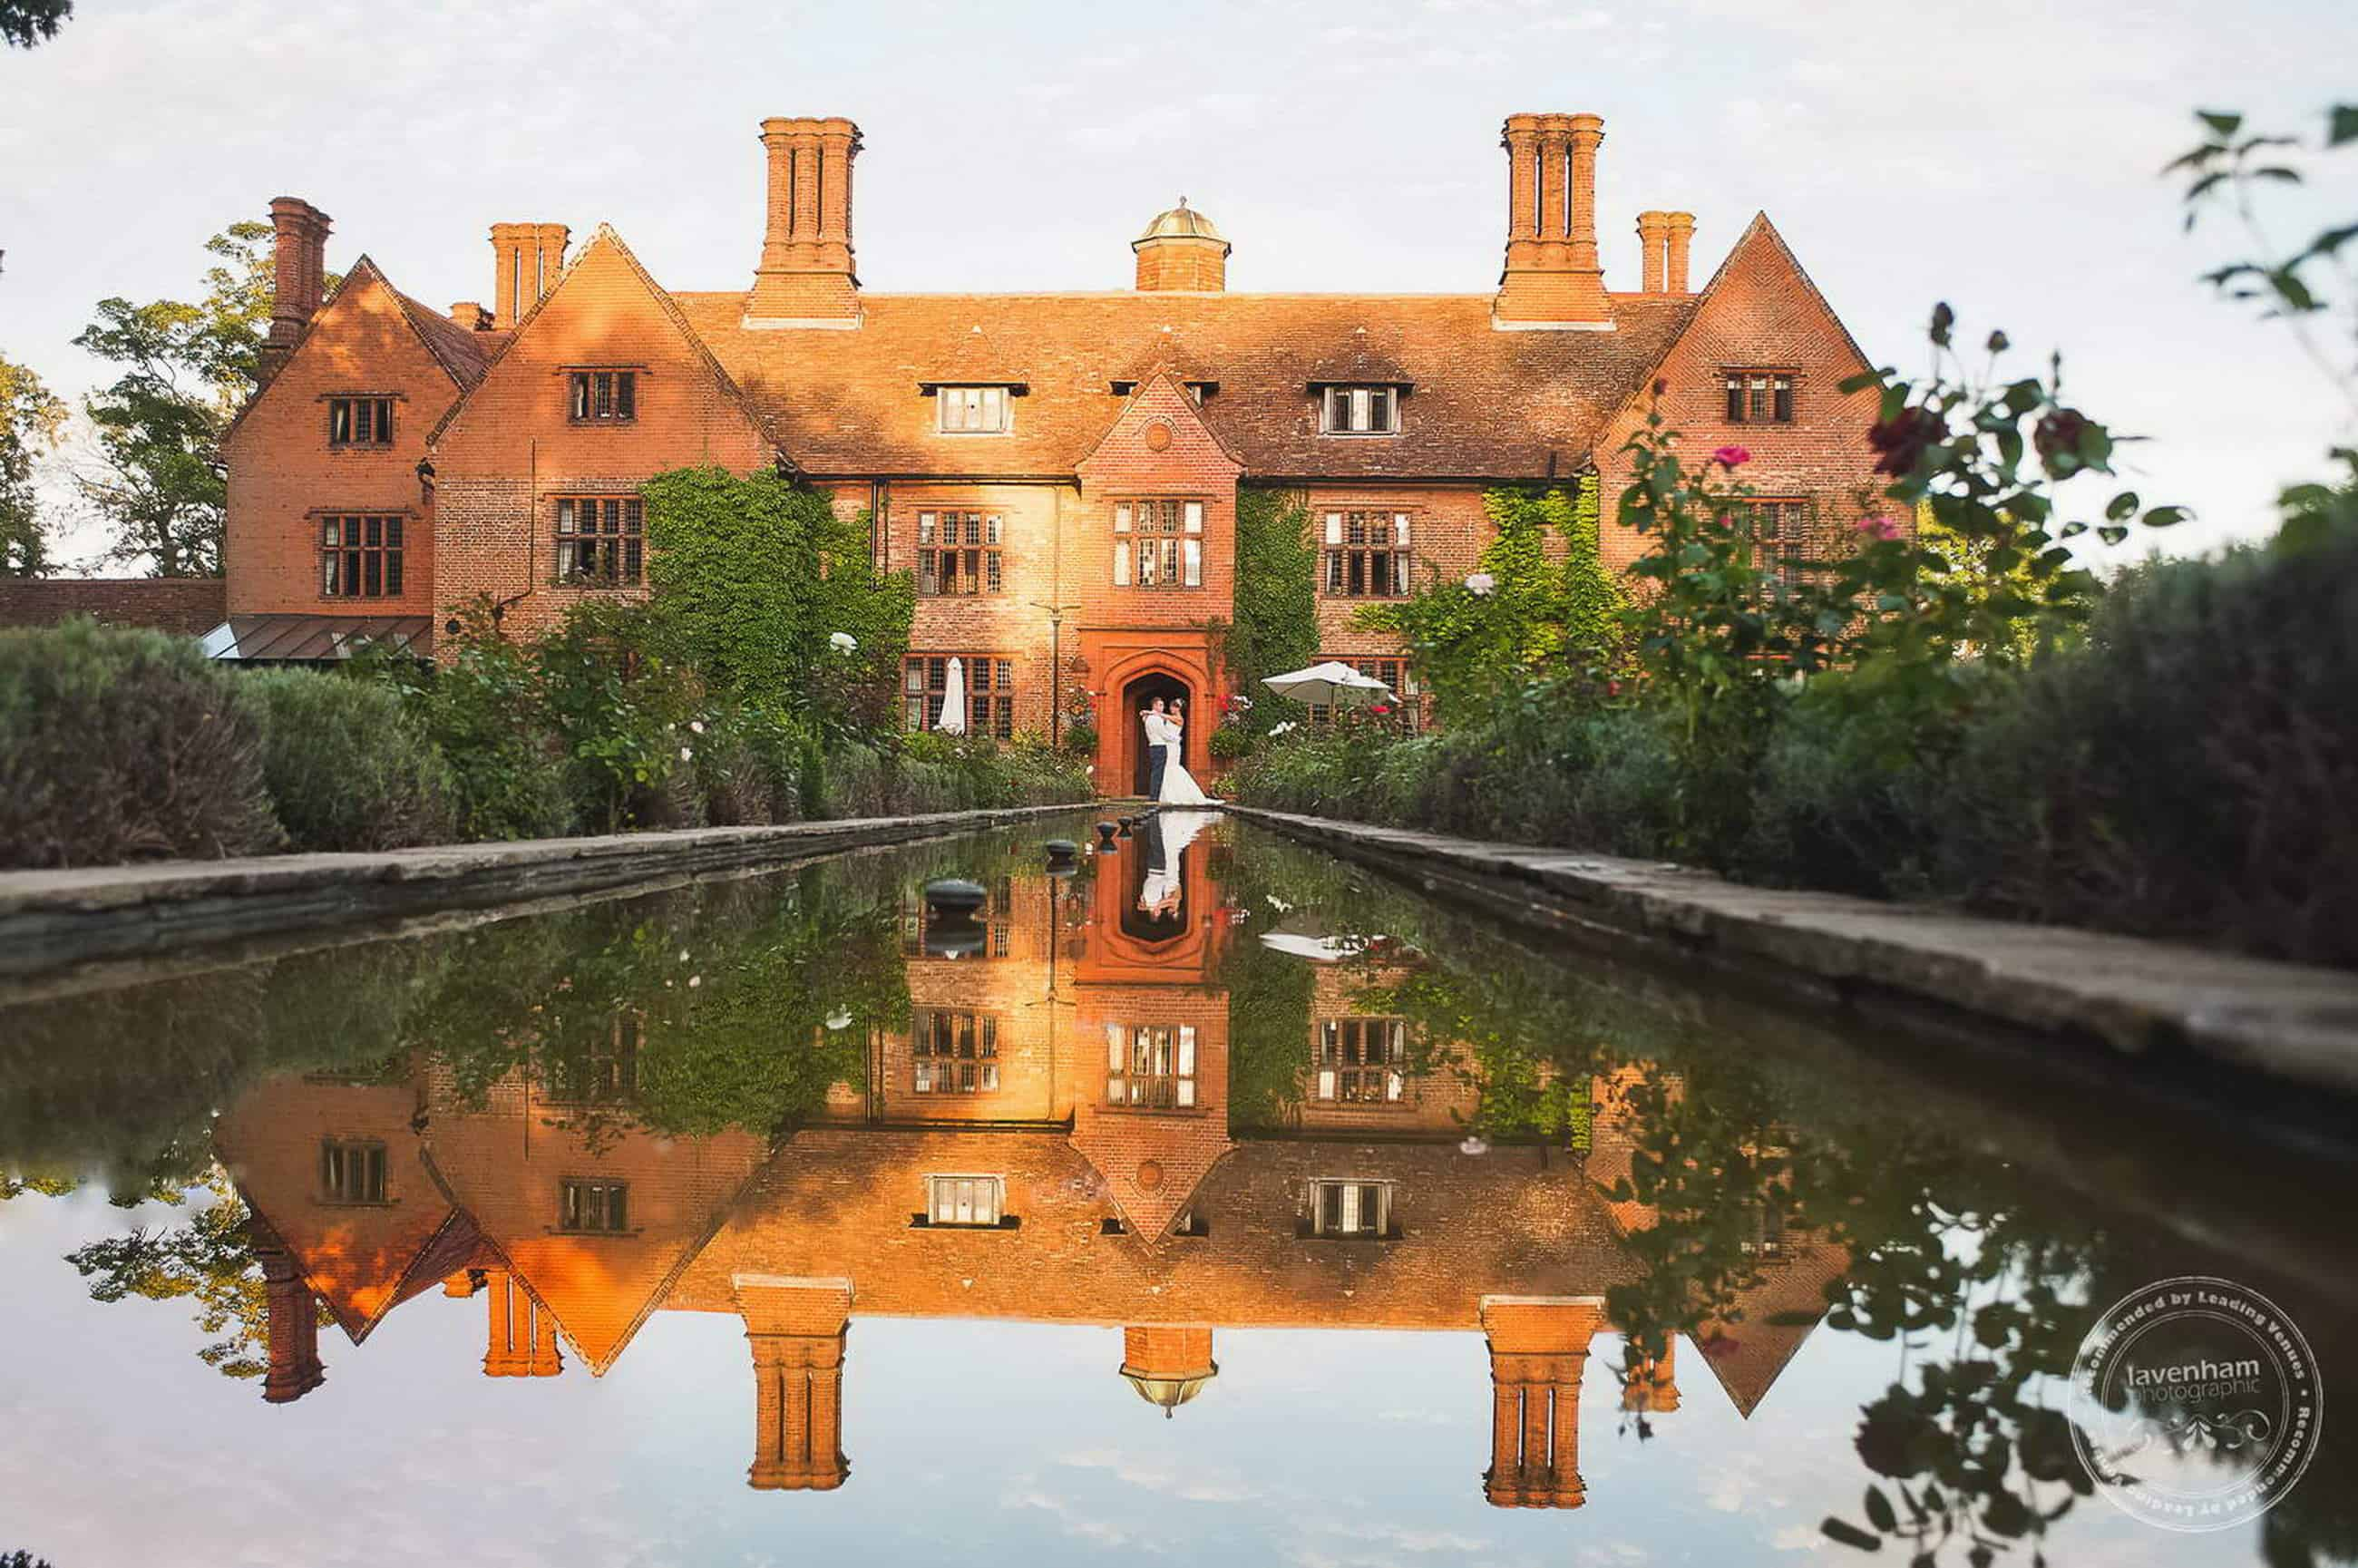 Striking reflection of Woodhall Manor. I love this low angle over the water at Woodhall Manor, getting as long as I can to show as much of the building in the reflection as I can.